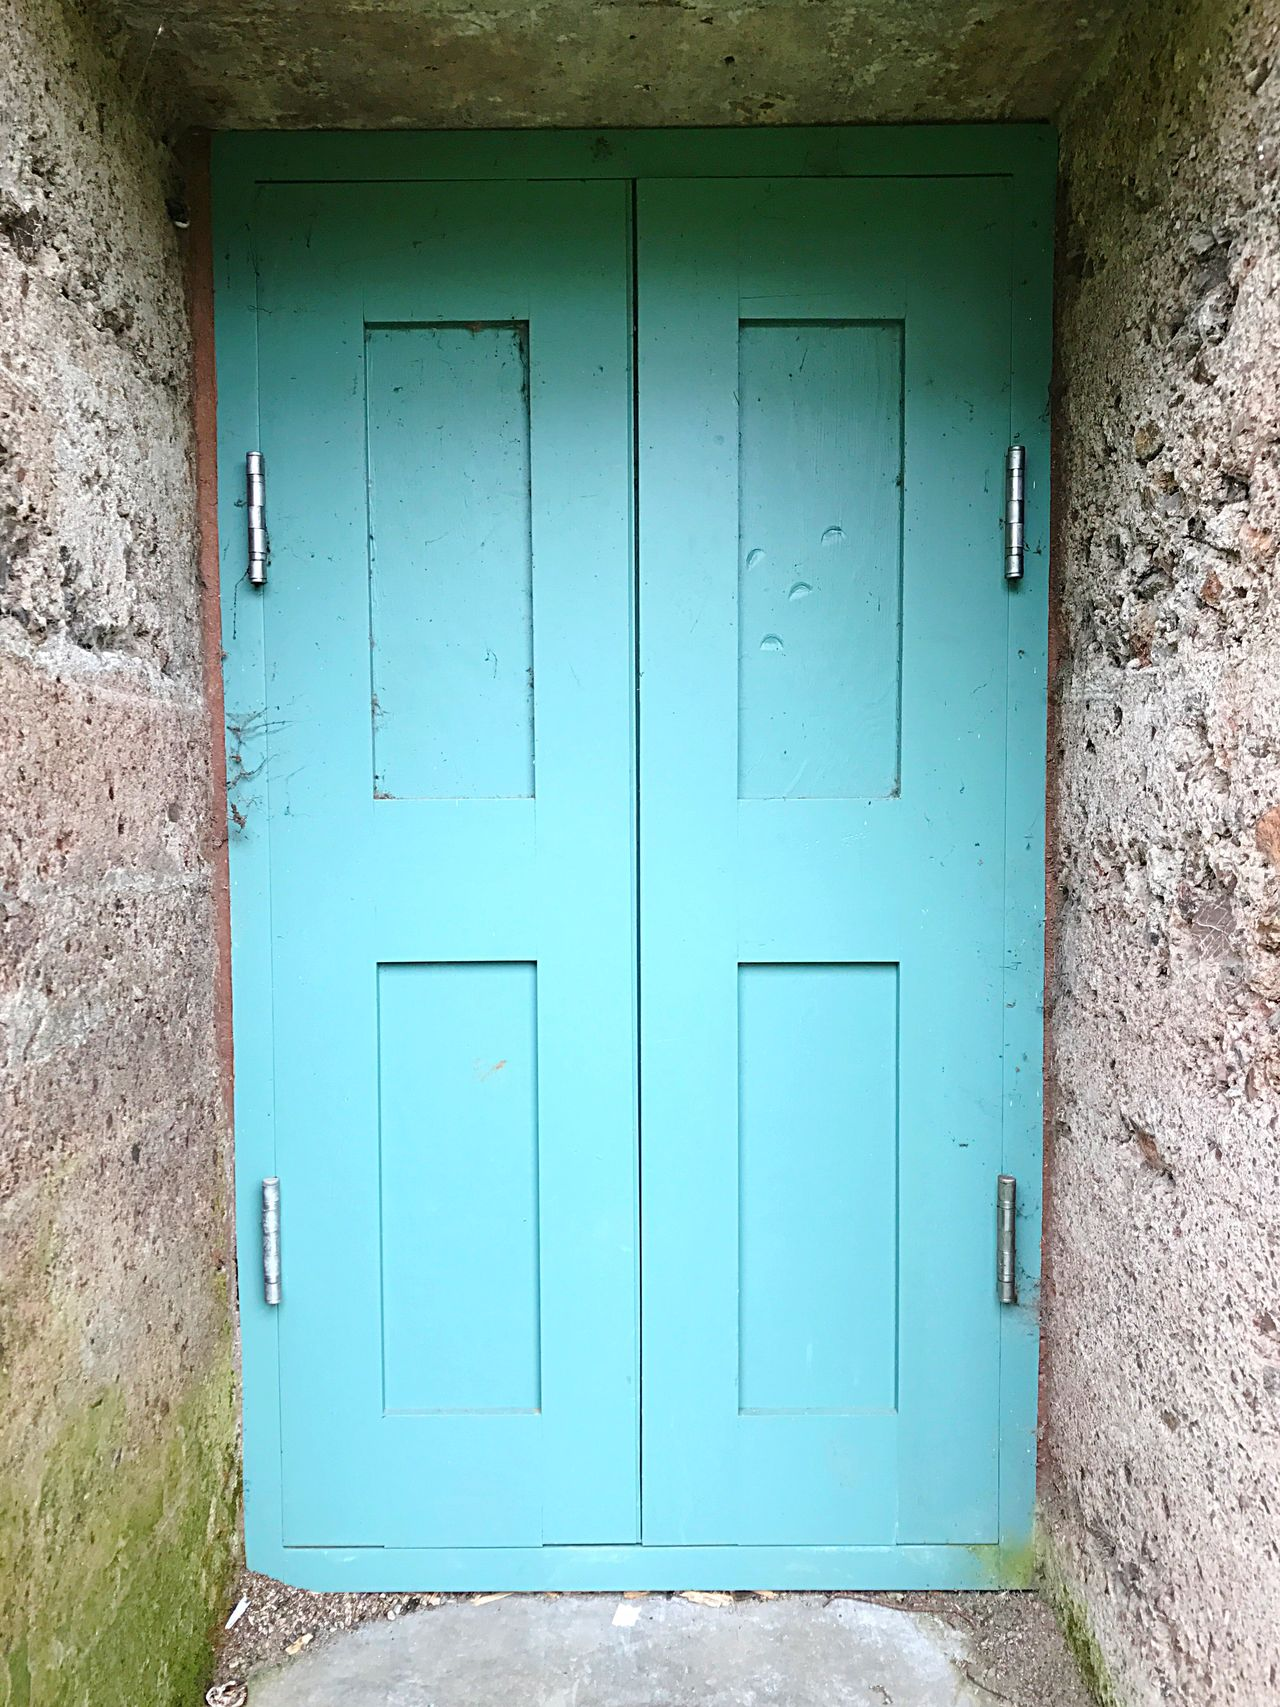 Closed Door Safety Security Protection Architecture No People Built Structure Blue Day Outdoors Building Exterior Close-up Open Edit Golden Gate Park Murphy Windmill Doorway